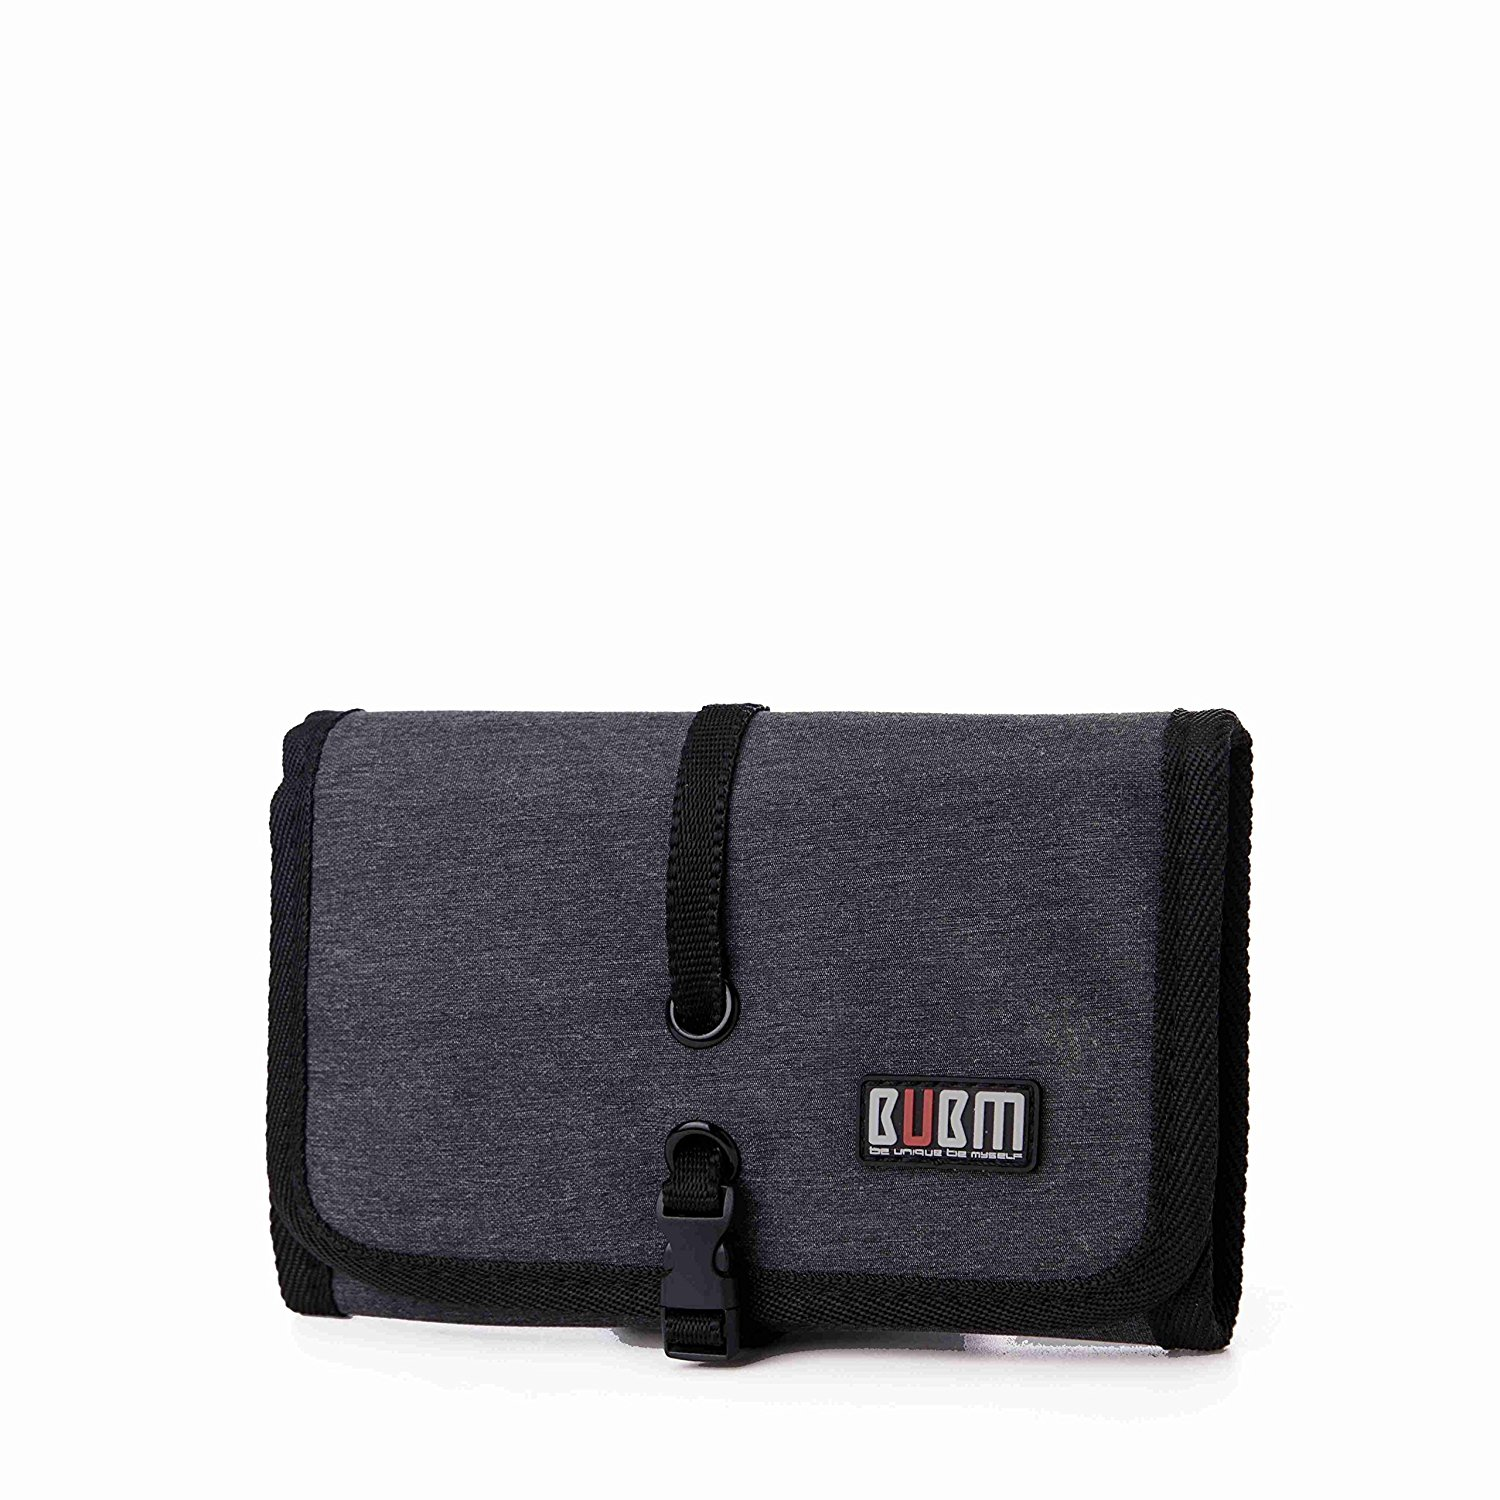 Portable Universal Cable Organizer Electronics Accessories Roll Up Folding Travel Bag USB Drive Bag Cable Stable Healthcare Kit(small, Black)